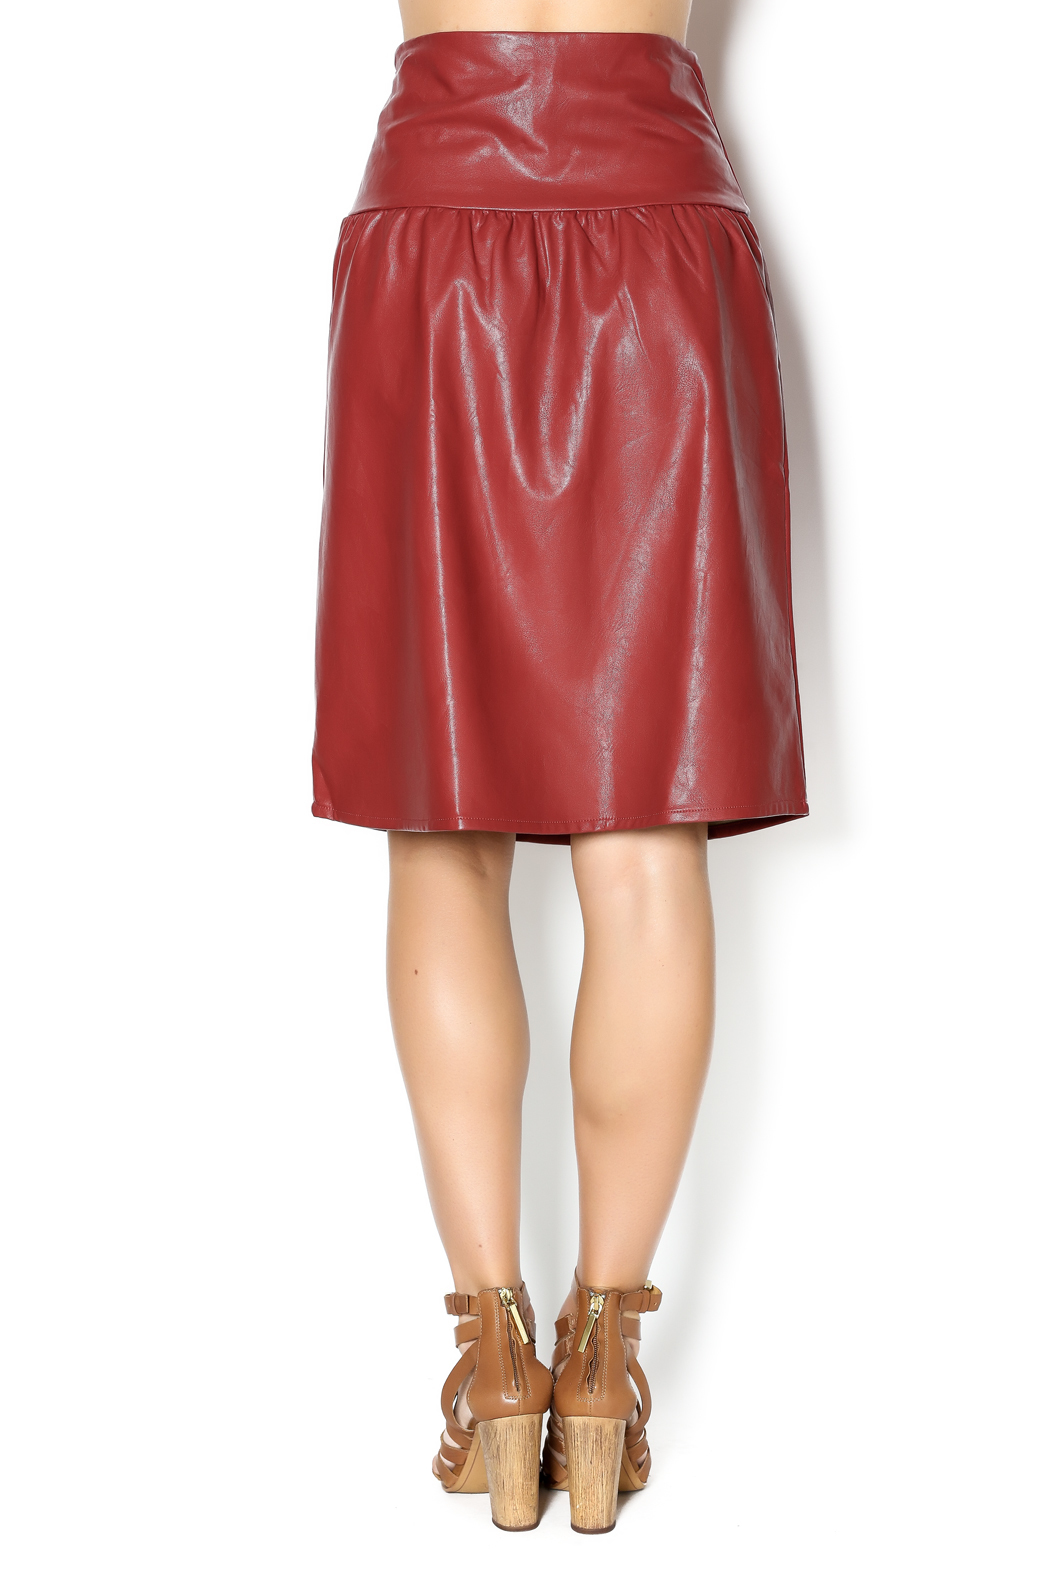 junee Faux Leather Skirt - Back Cropped Image